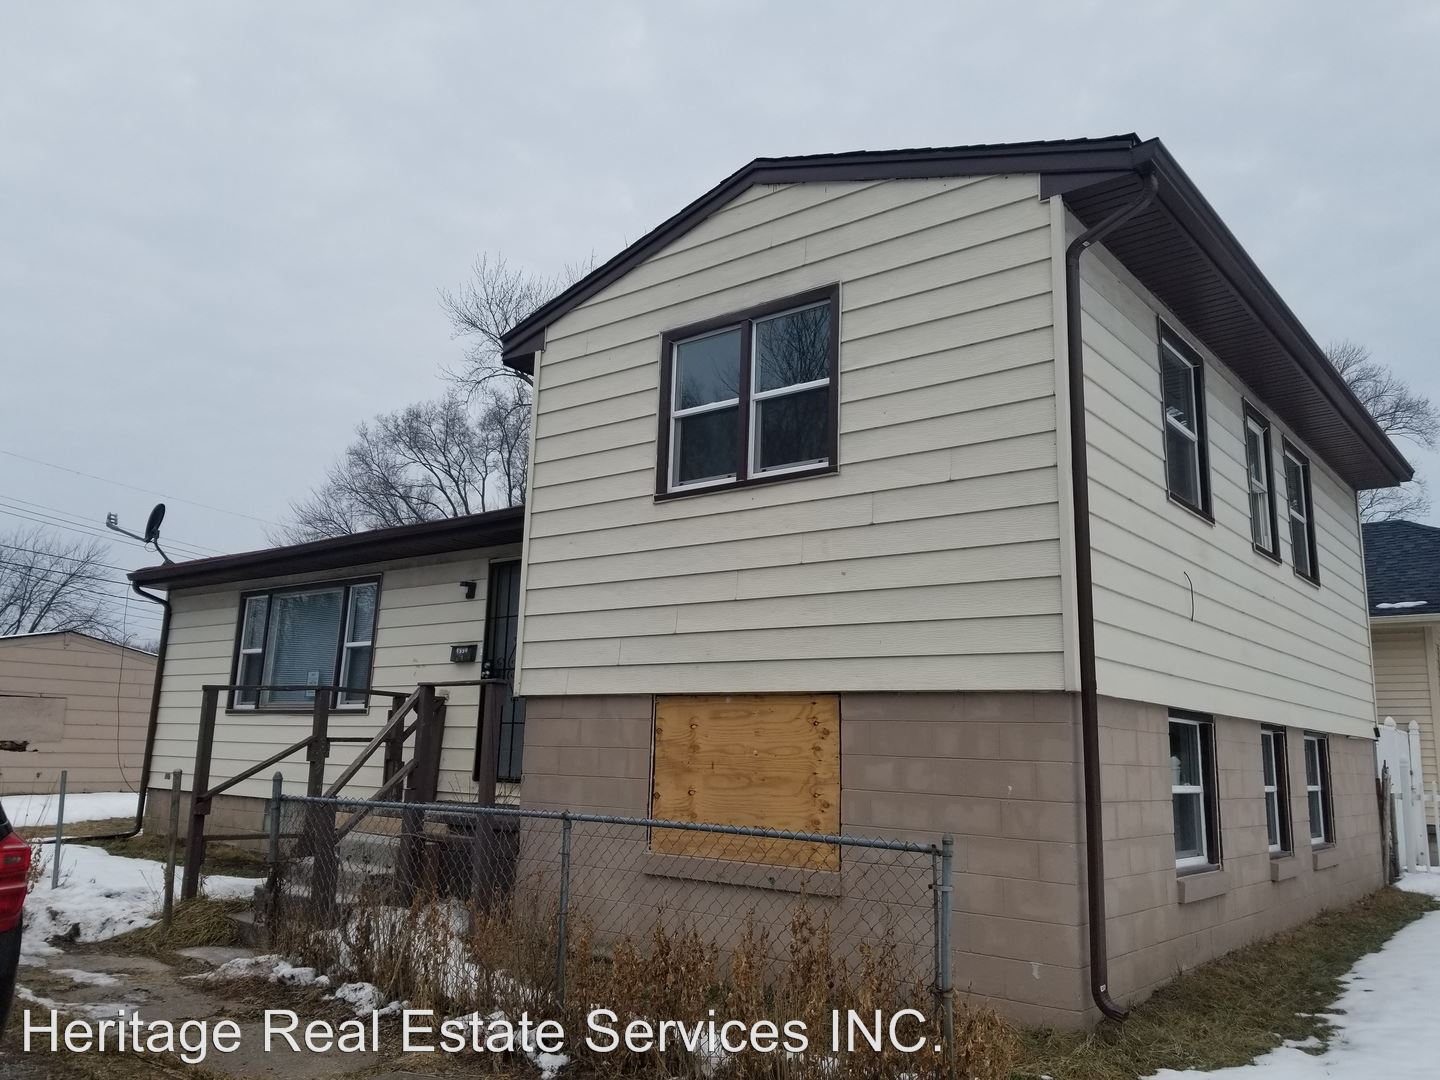 4994 Maryland St, Gary, IN 46409 | RealEstate com